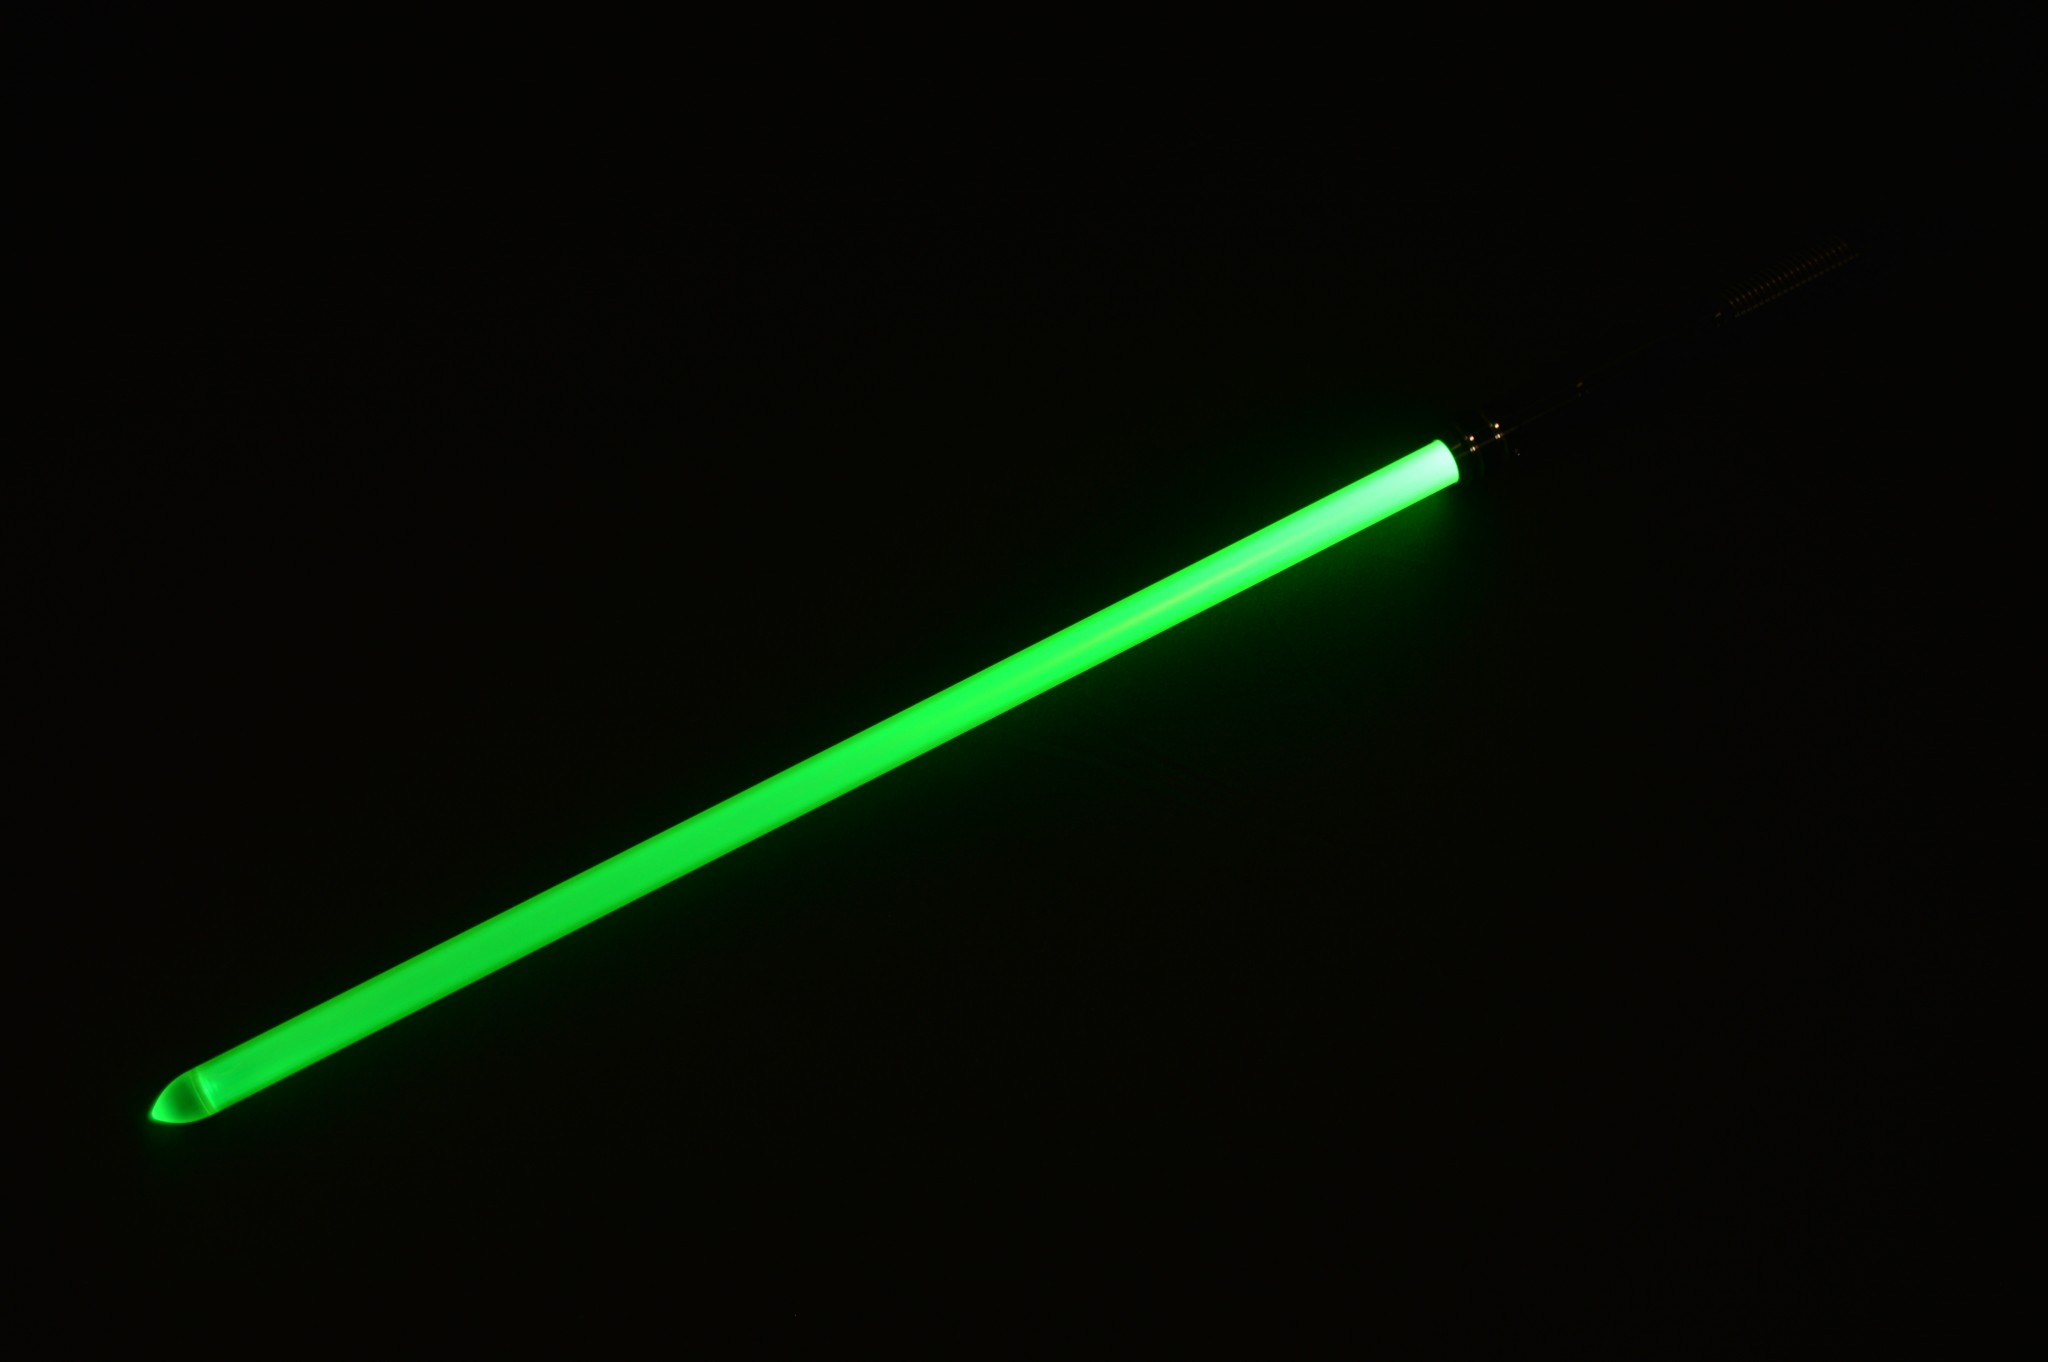 Here is the Photon Blade on a green LED saber. It still looks pretty darn good here.